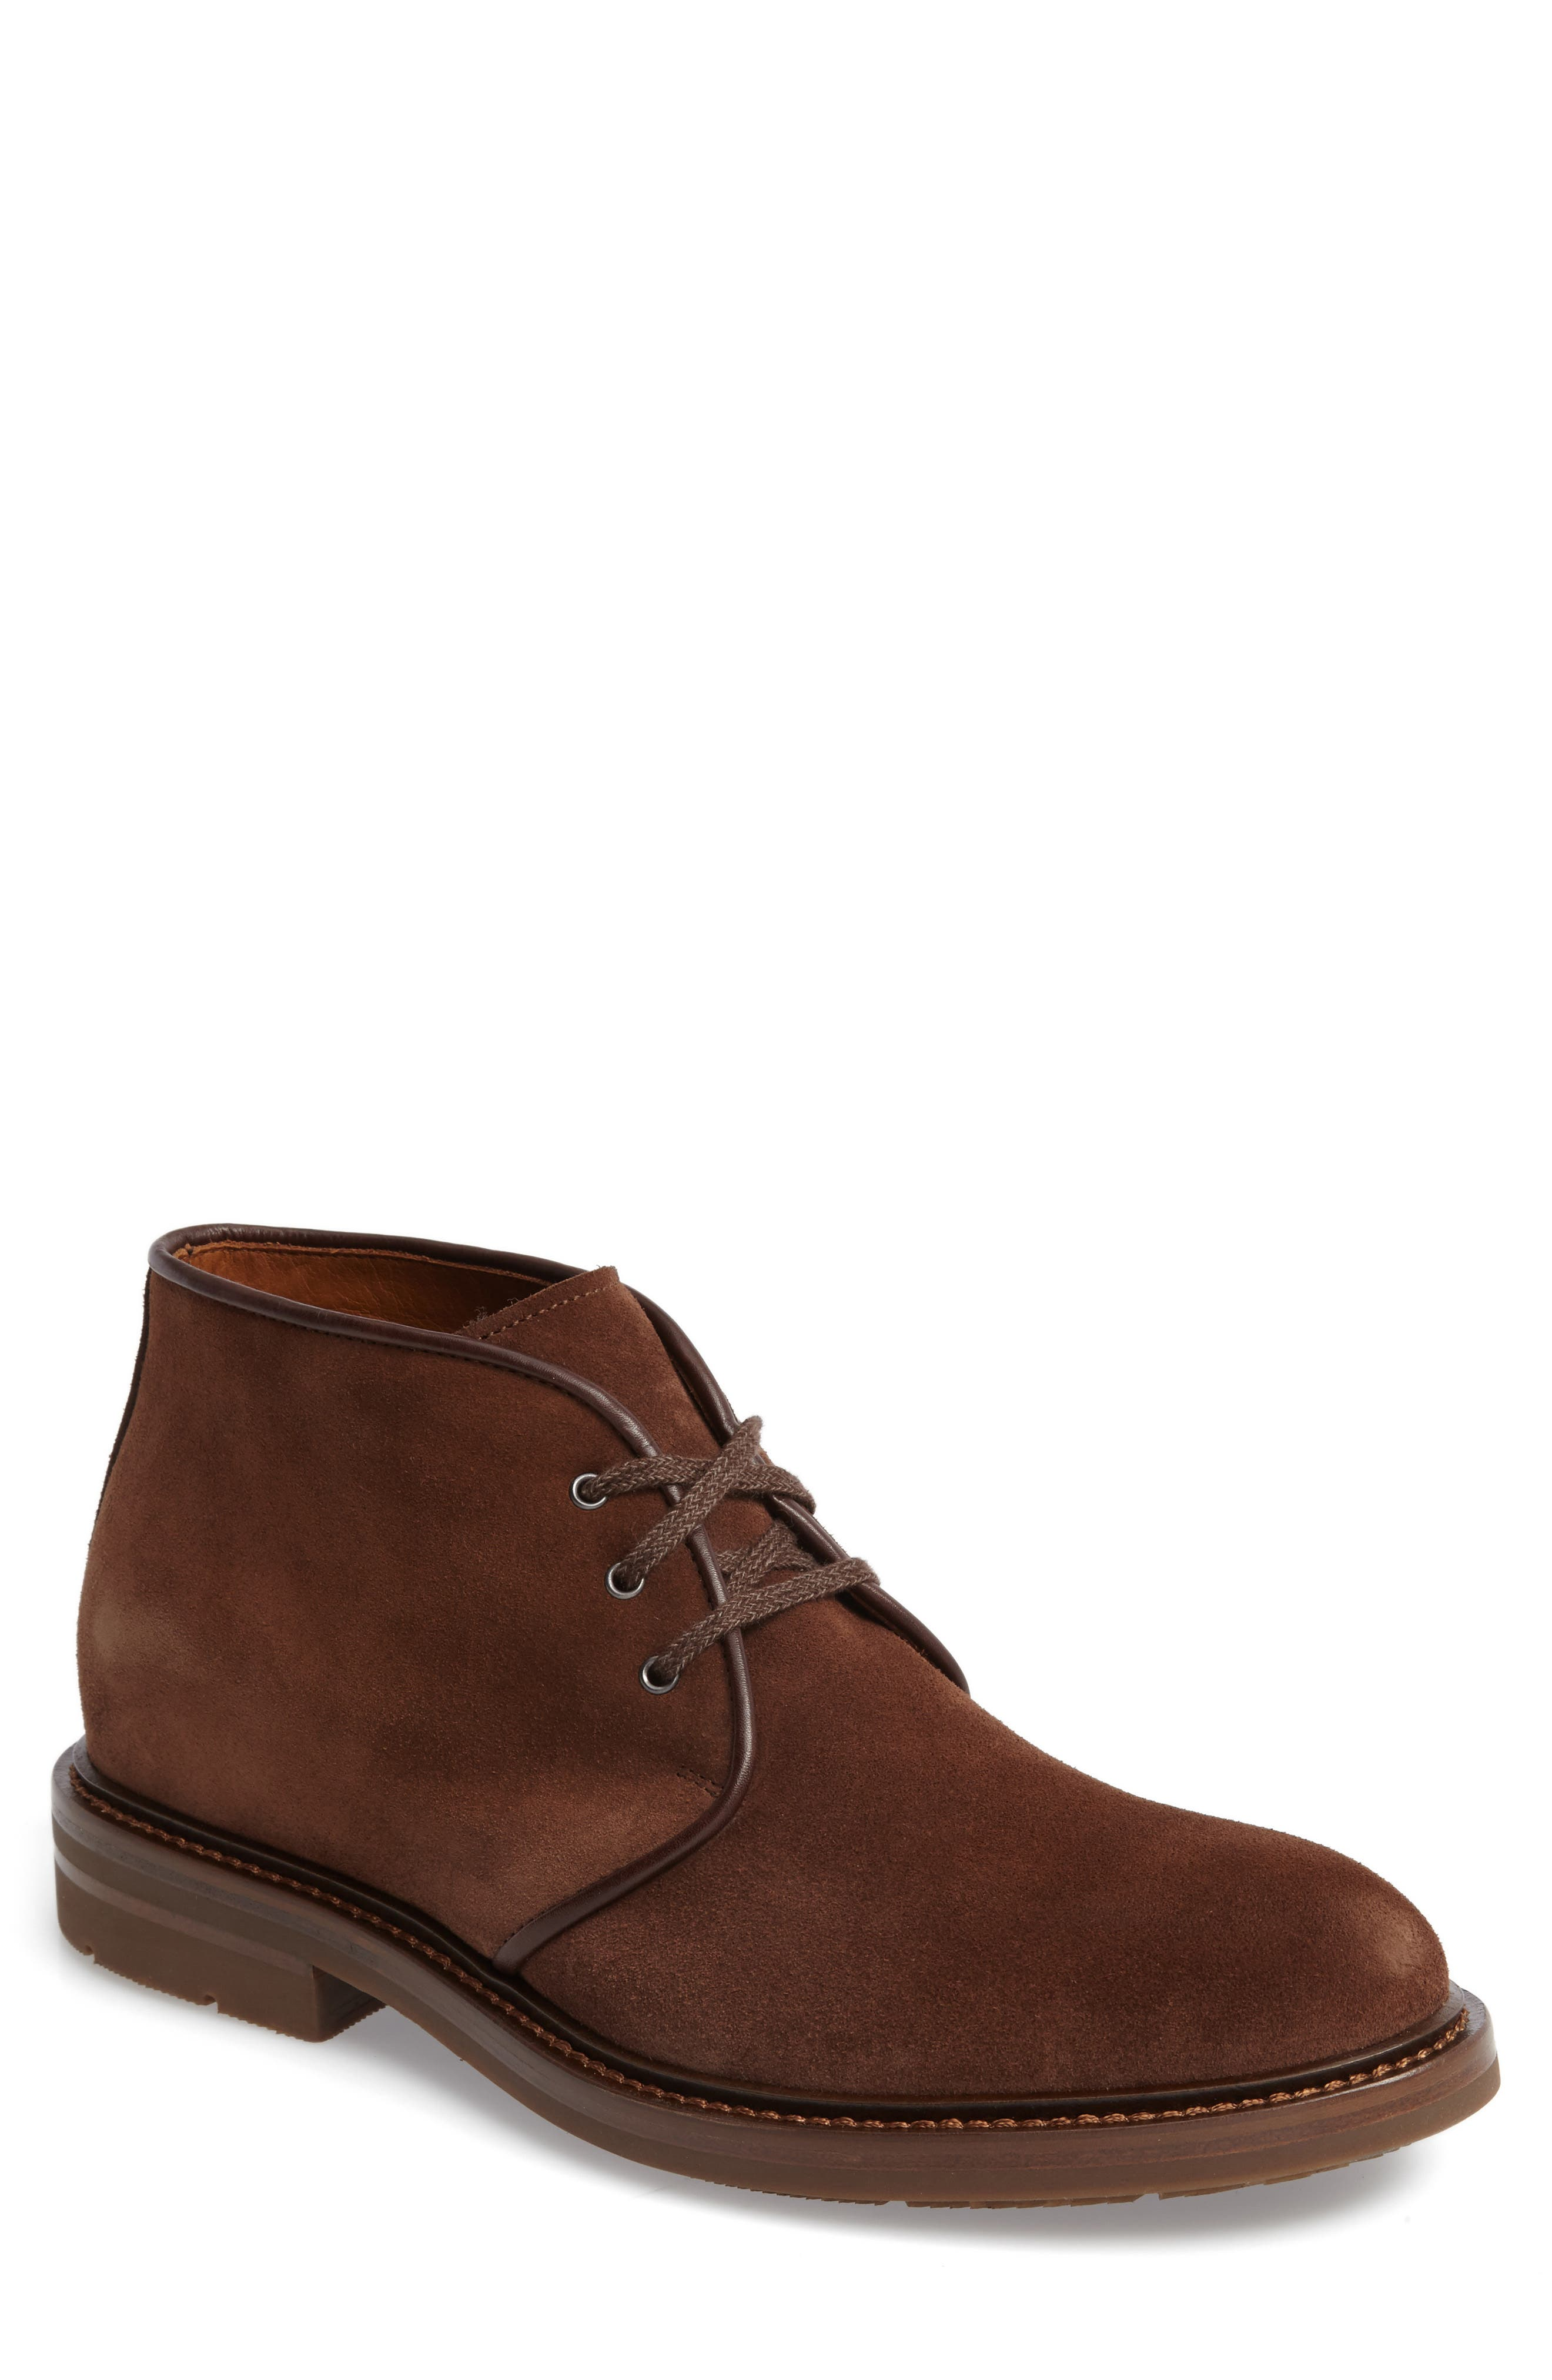 Aquatalia Raphael Chukka Boot (Men)